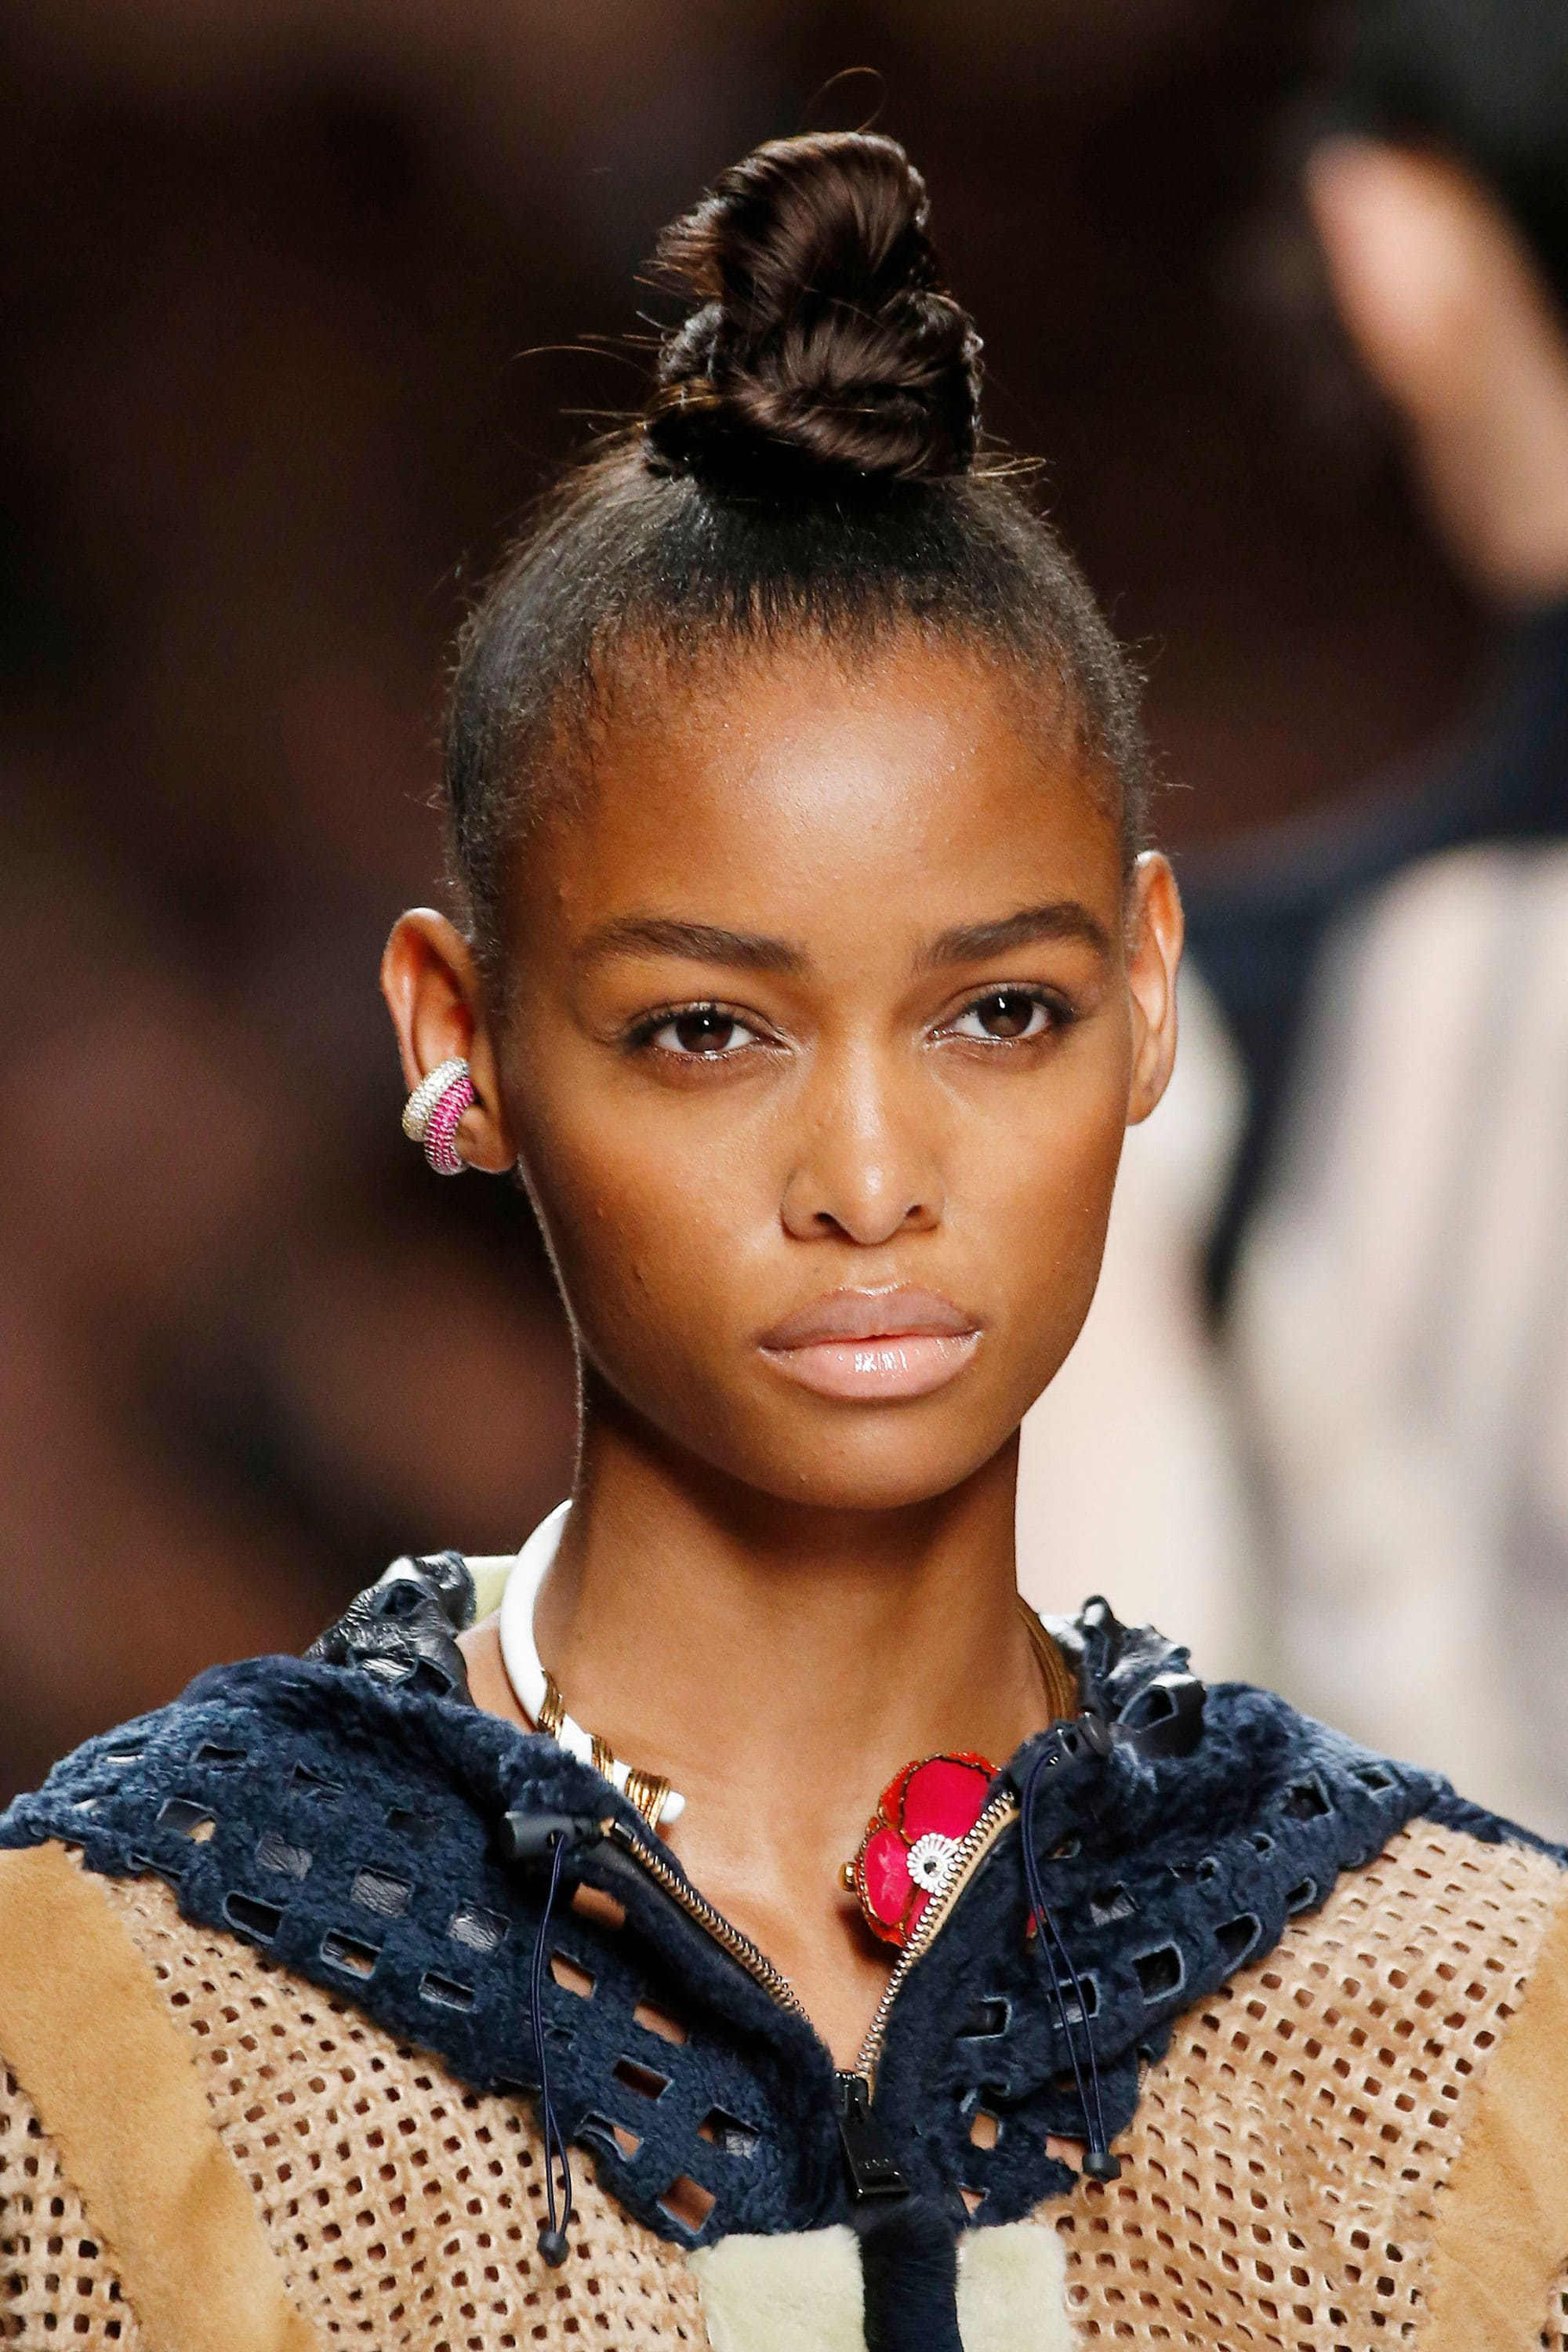 Knot bun hairstyle: Runway picture of a woman with a tight slicked back ninja bun top knot hairstyle